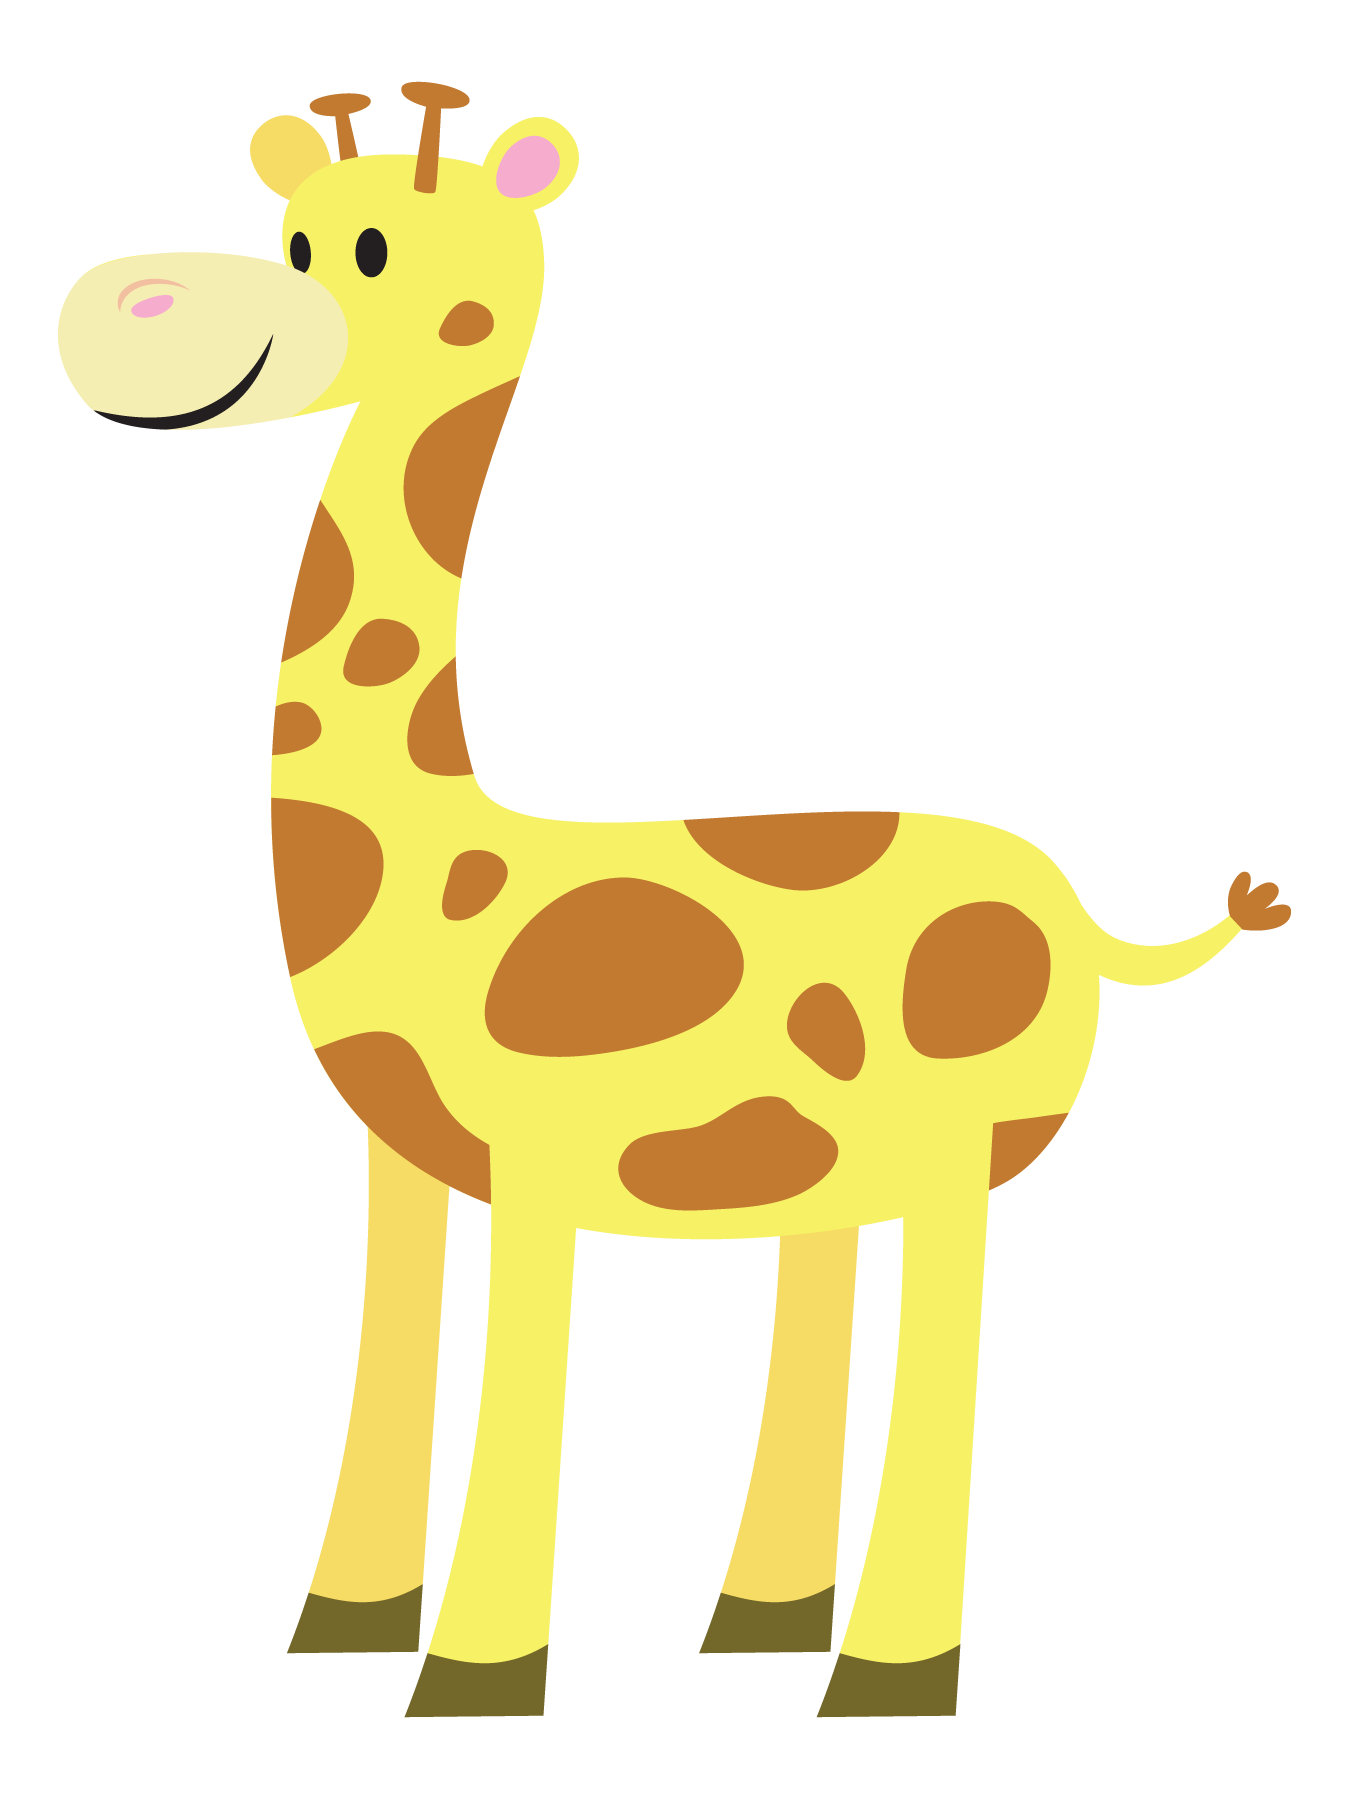 Giraffe clipart #12, Download drawings